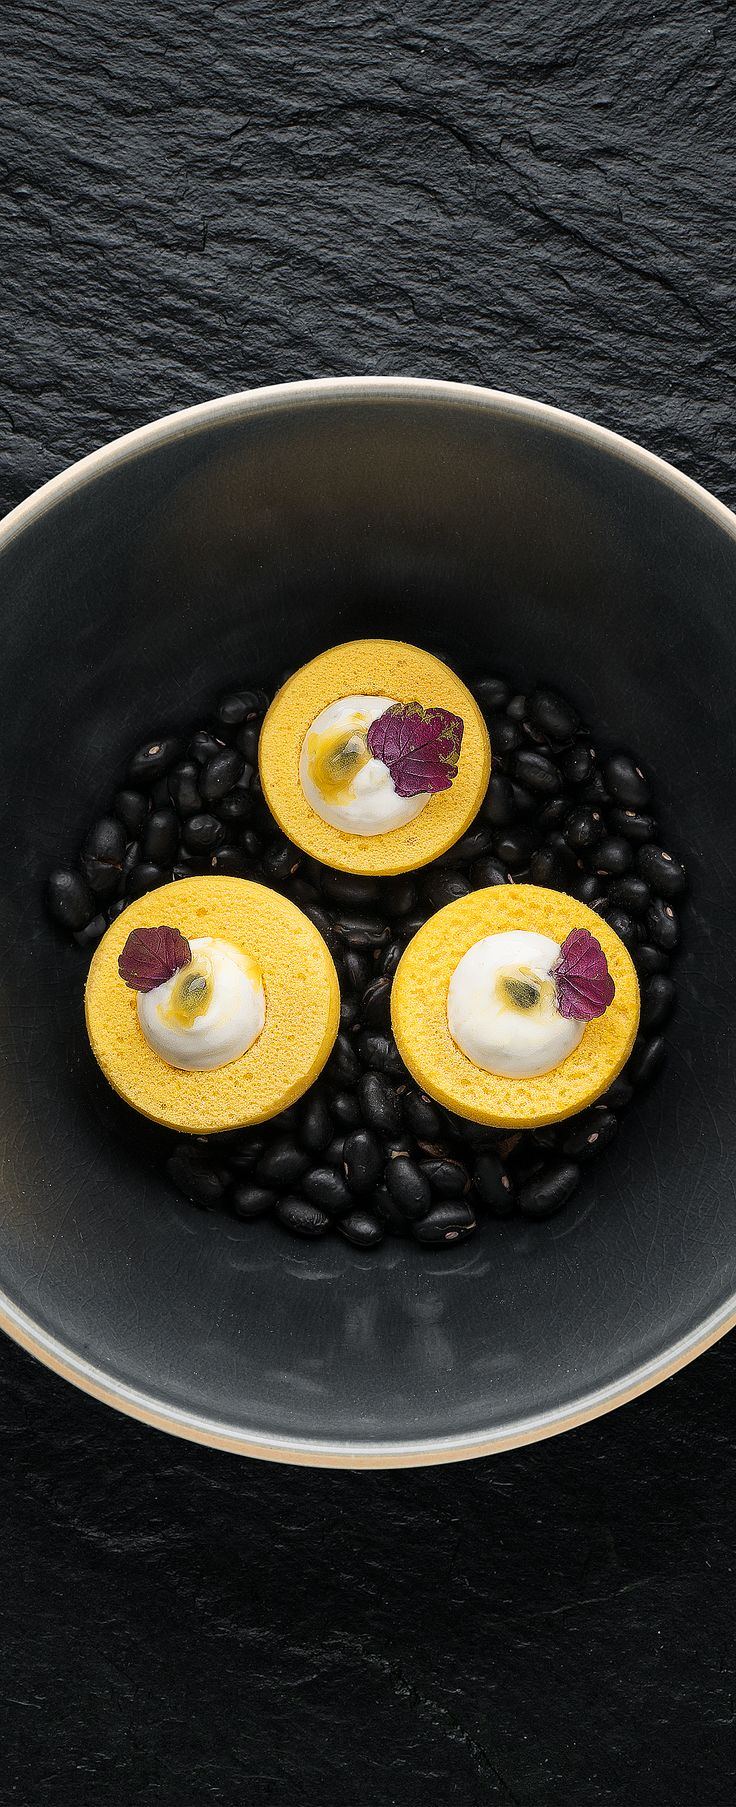 Passionfruit crisps with yoghurt and shiso. 2 Michelin Restaurant Aan de Poel Amstelveen The Netherlands. Food Photography Amuse